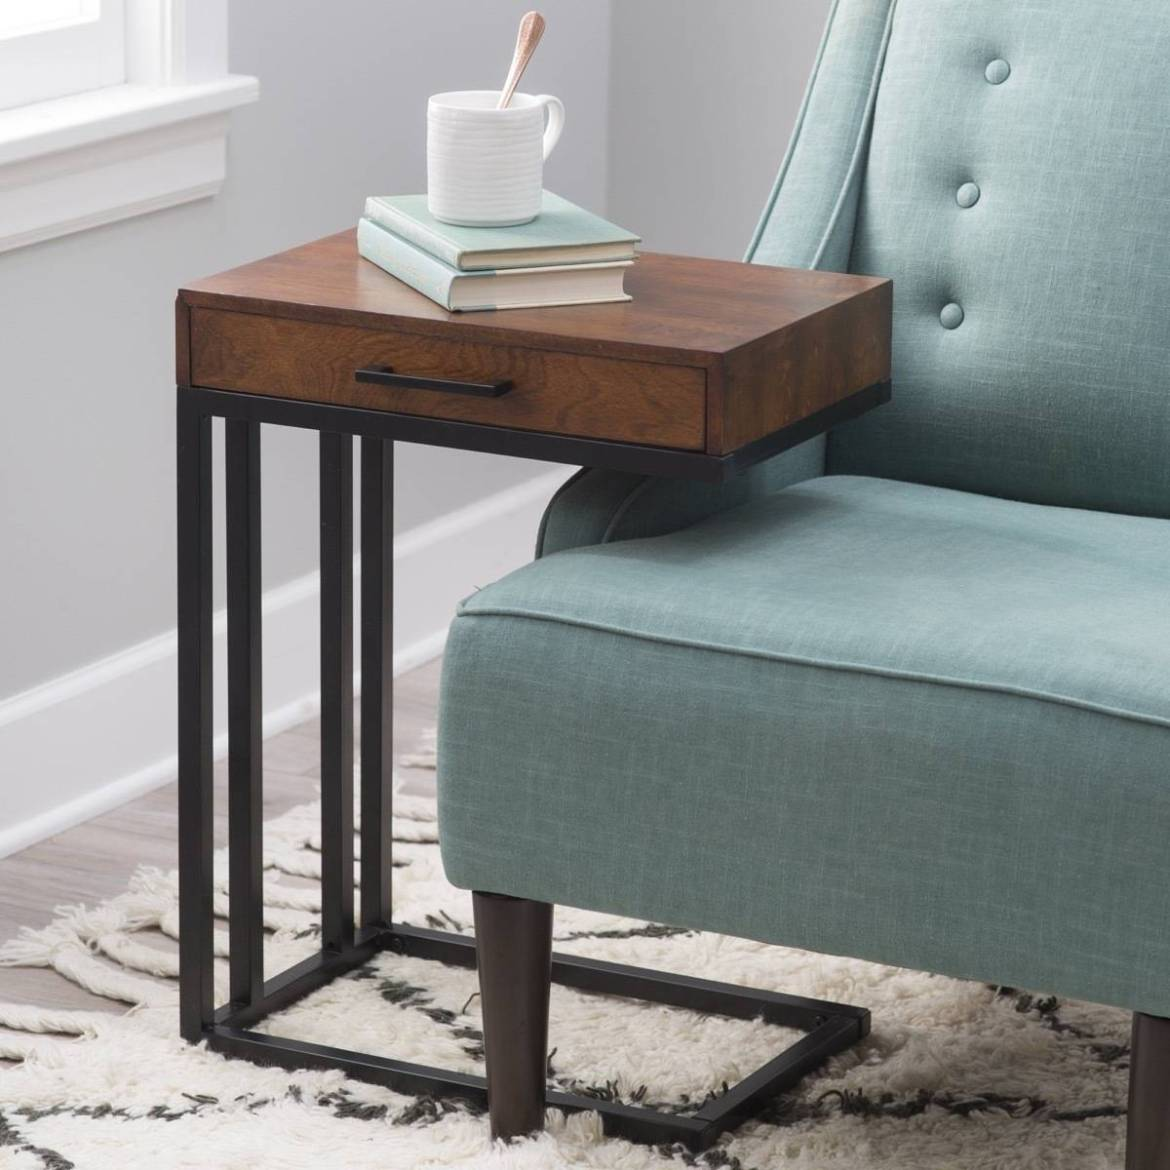 Drake c-table with drawer from Hayneedle